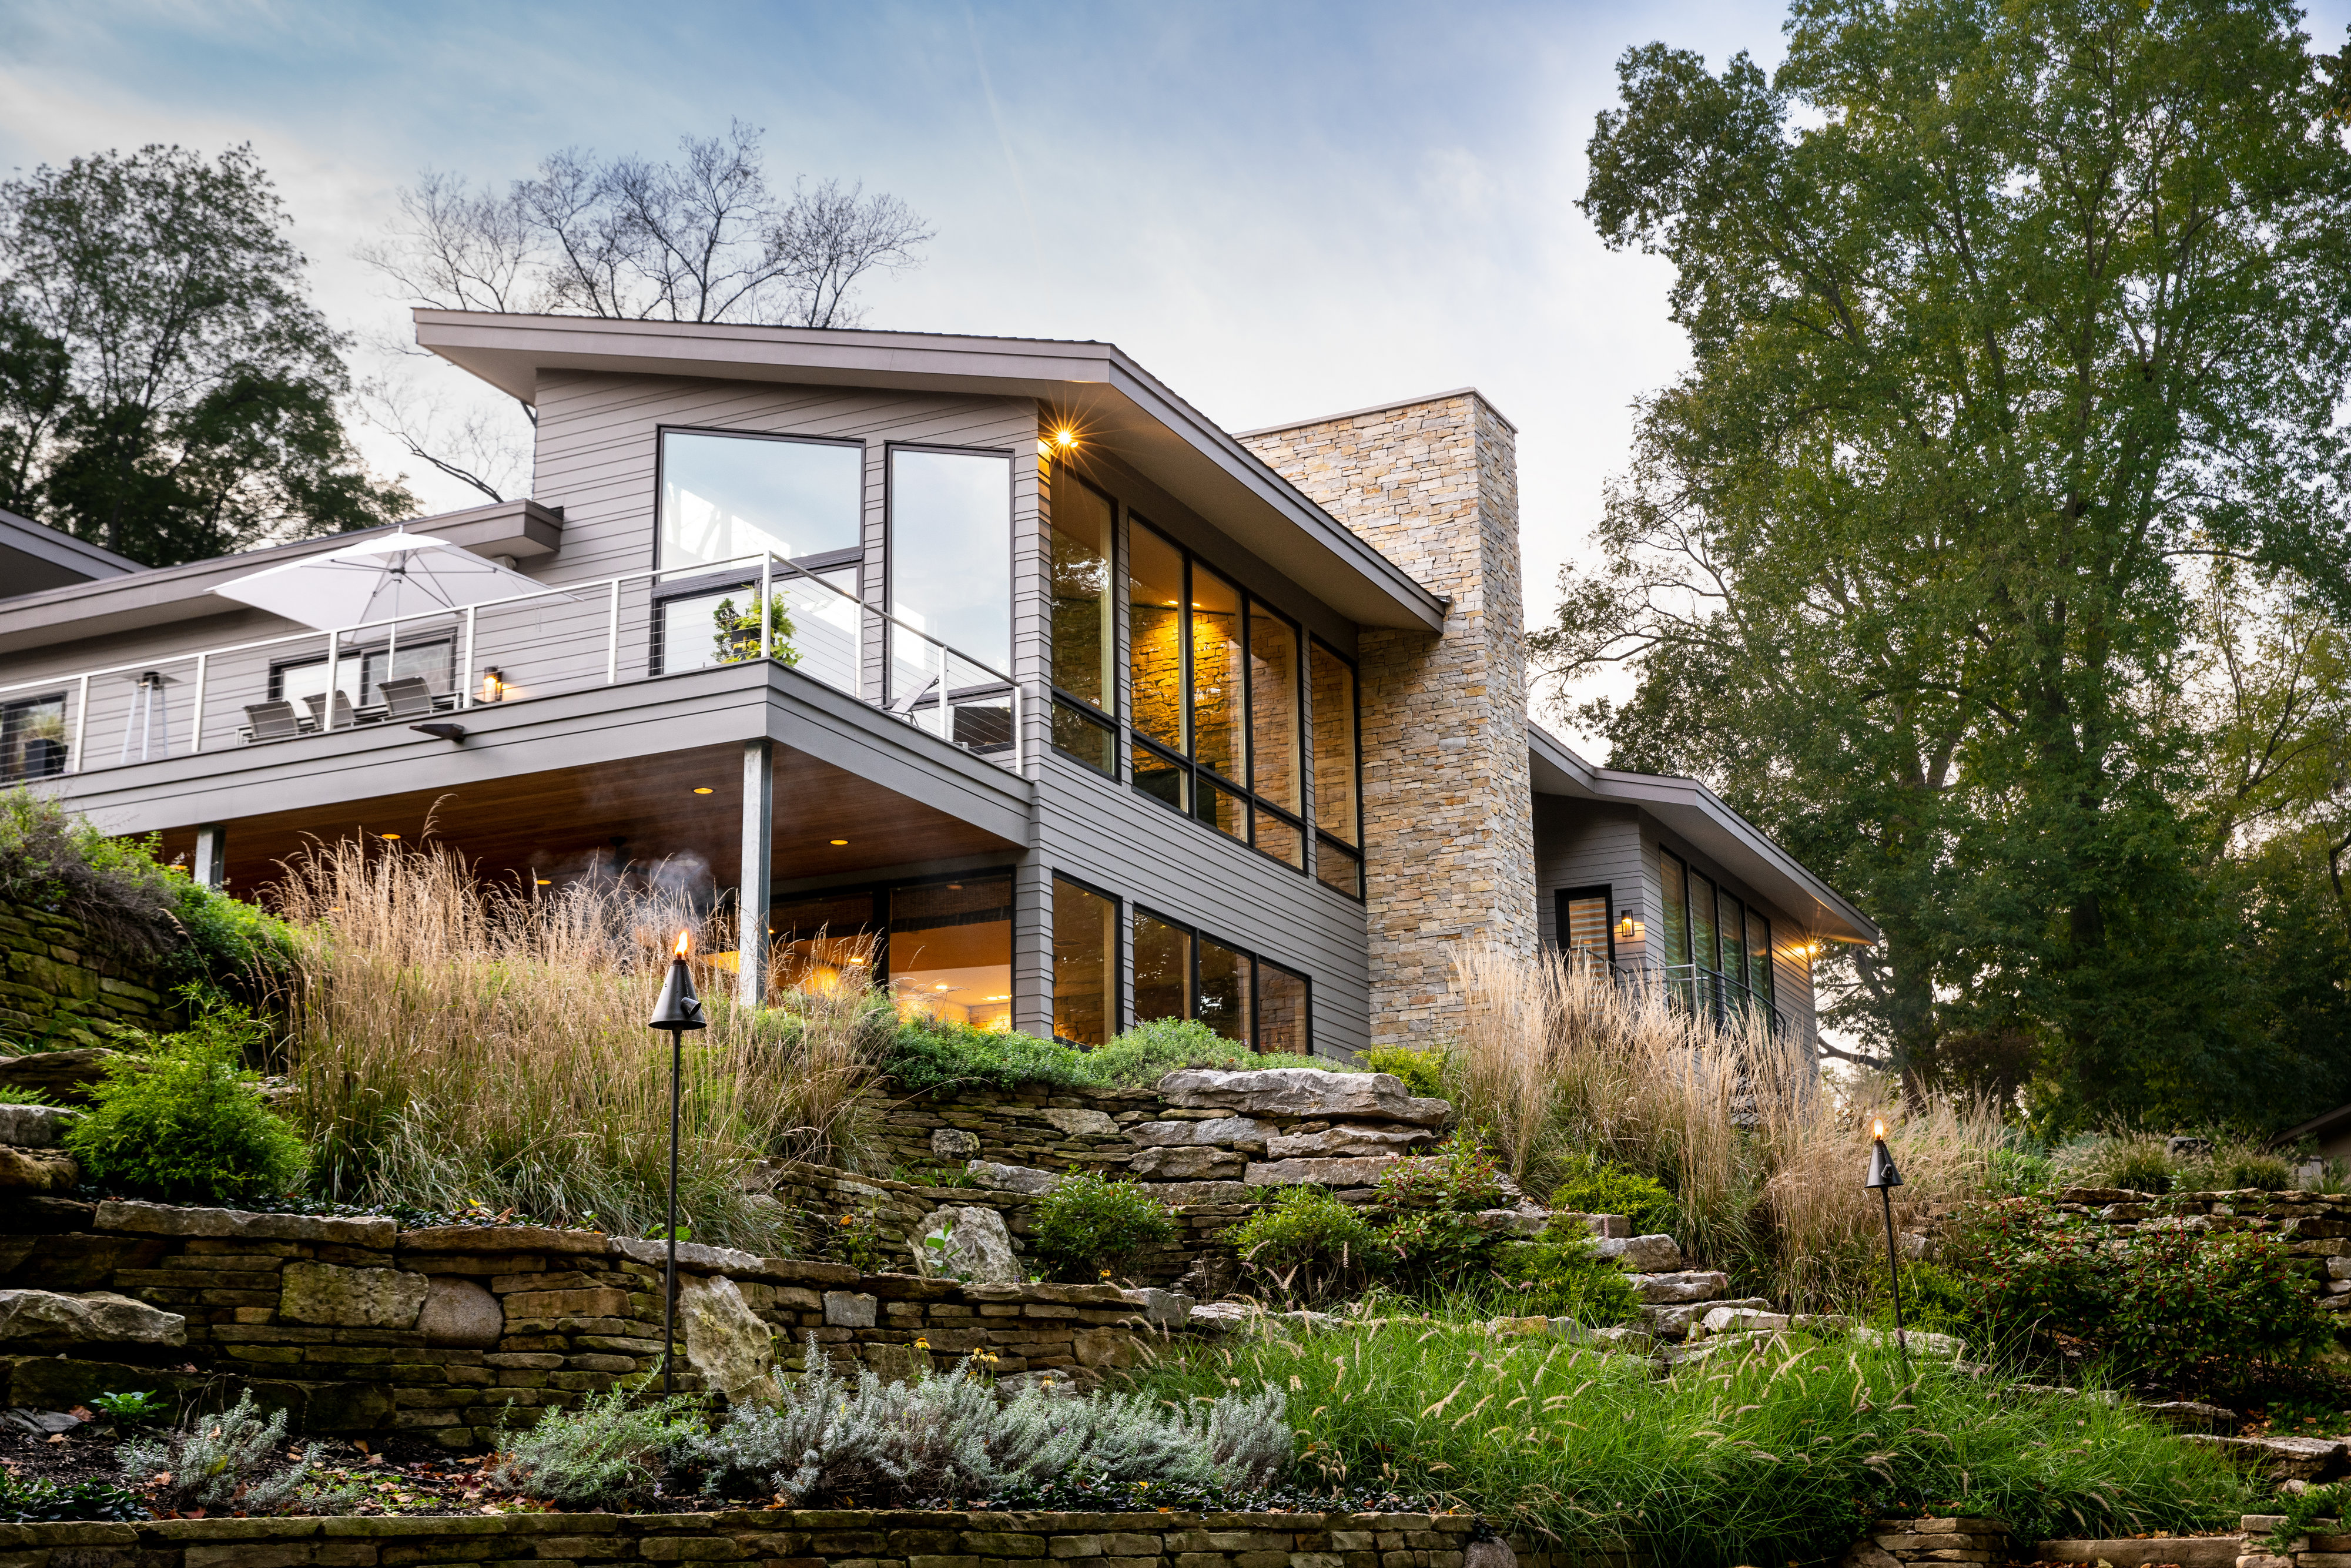 Looking Great: How to Prep for Exterior Architectural Photos